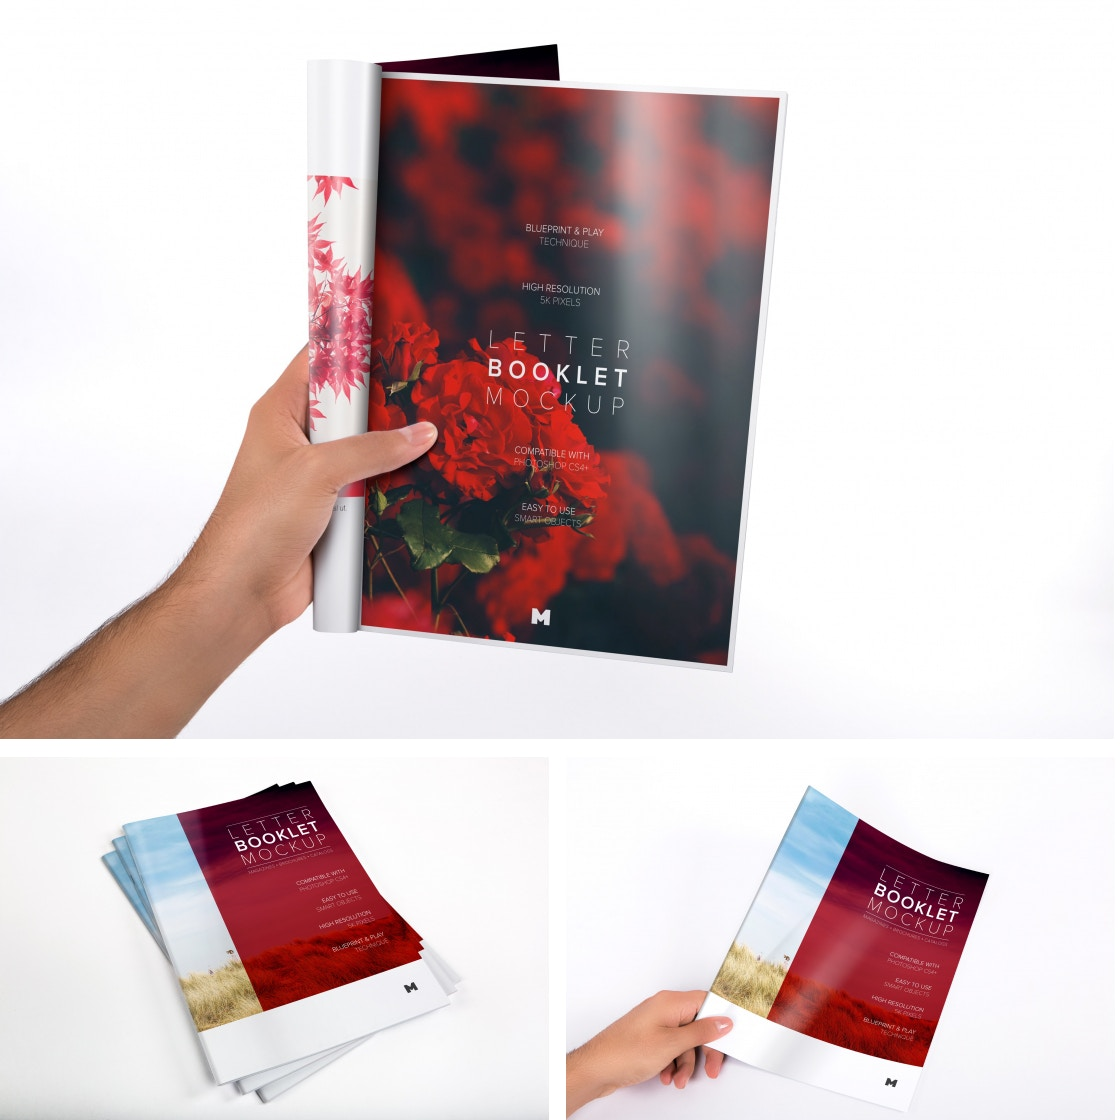 Letter Booklet Mockups by Original Mockups on Original Mockups